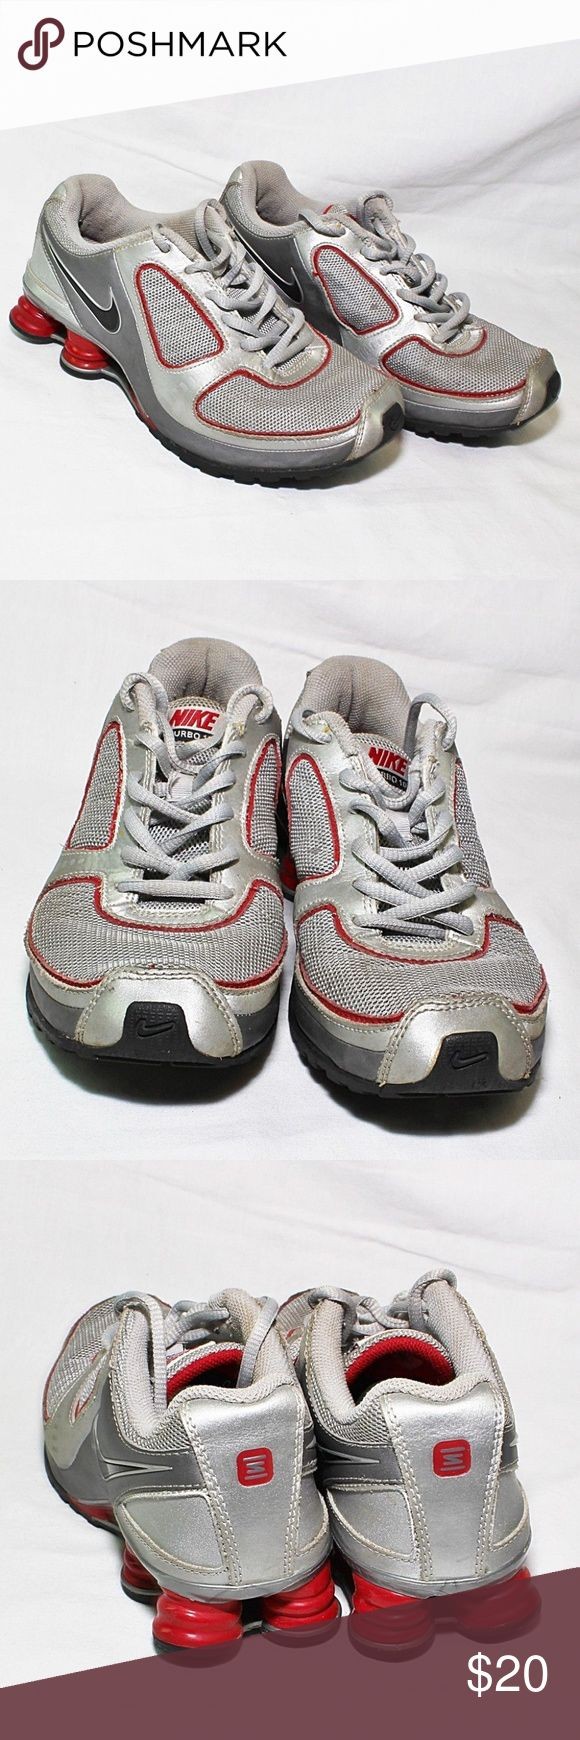 Nike Turbo 10 Sz 5 Youth Used Gray Red 386635-002 Description: Used, some scratches / scuff marks, some peels to fabric inside the shoes / around ankle area. Plenty of life left in these shoes. Grey / red in color. Size 5Y (youth) UK: 4.5 EUR: 37.5  Item #: 273072963464 Nike Shoes Sneakers